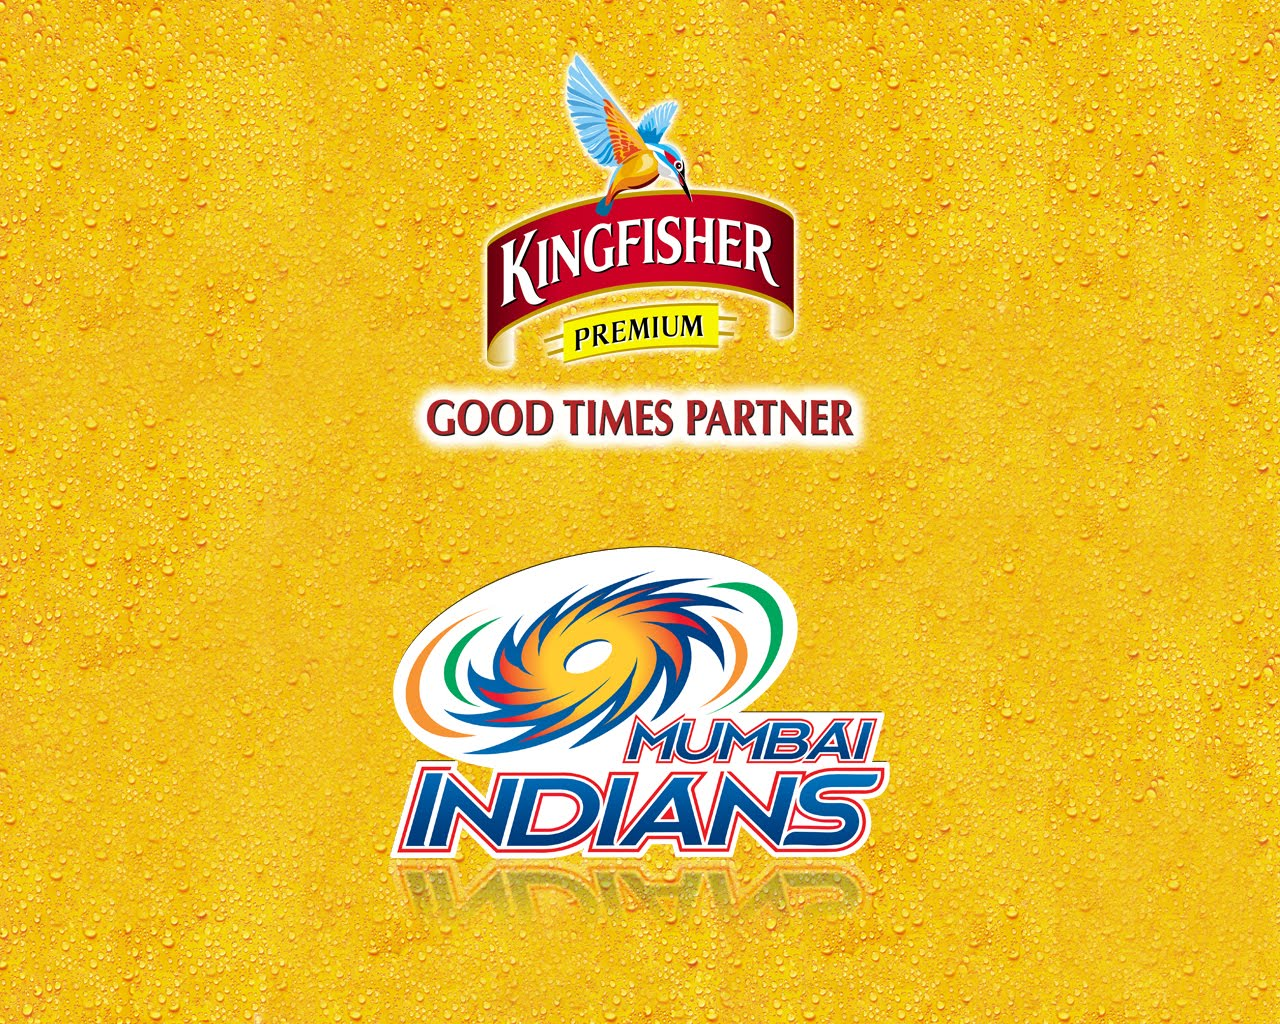 essay on ipl india Indian premier league: indian premier league (ipl), indian professional twenty20 (t20) cricket league established in 2008 the league, which is based on a round-robin.